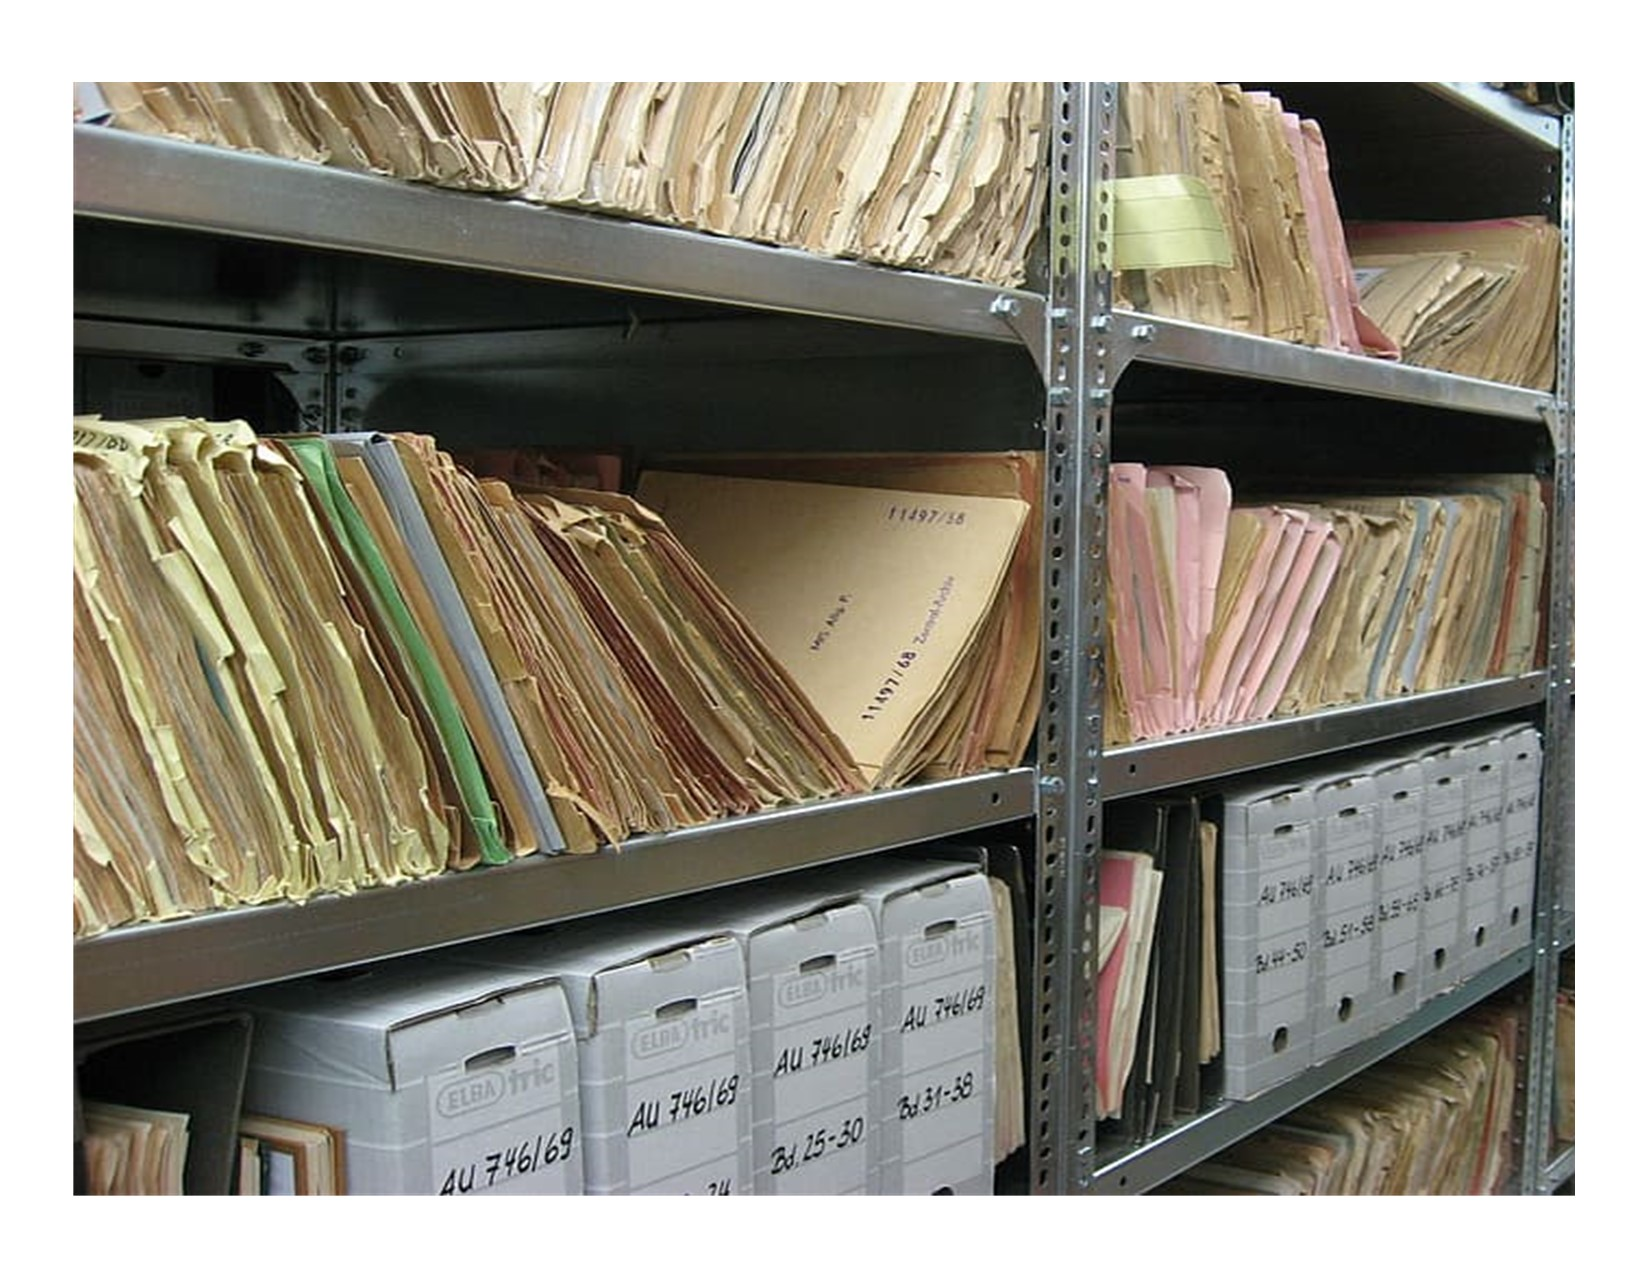 Archive folders and boxes